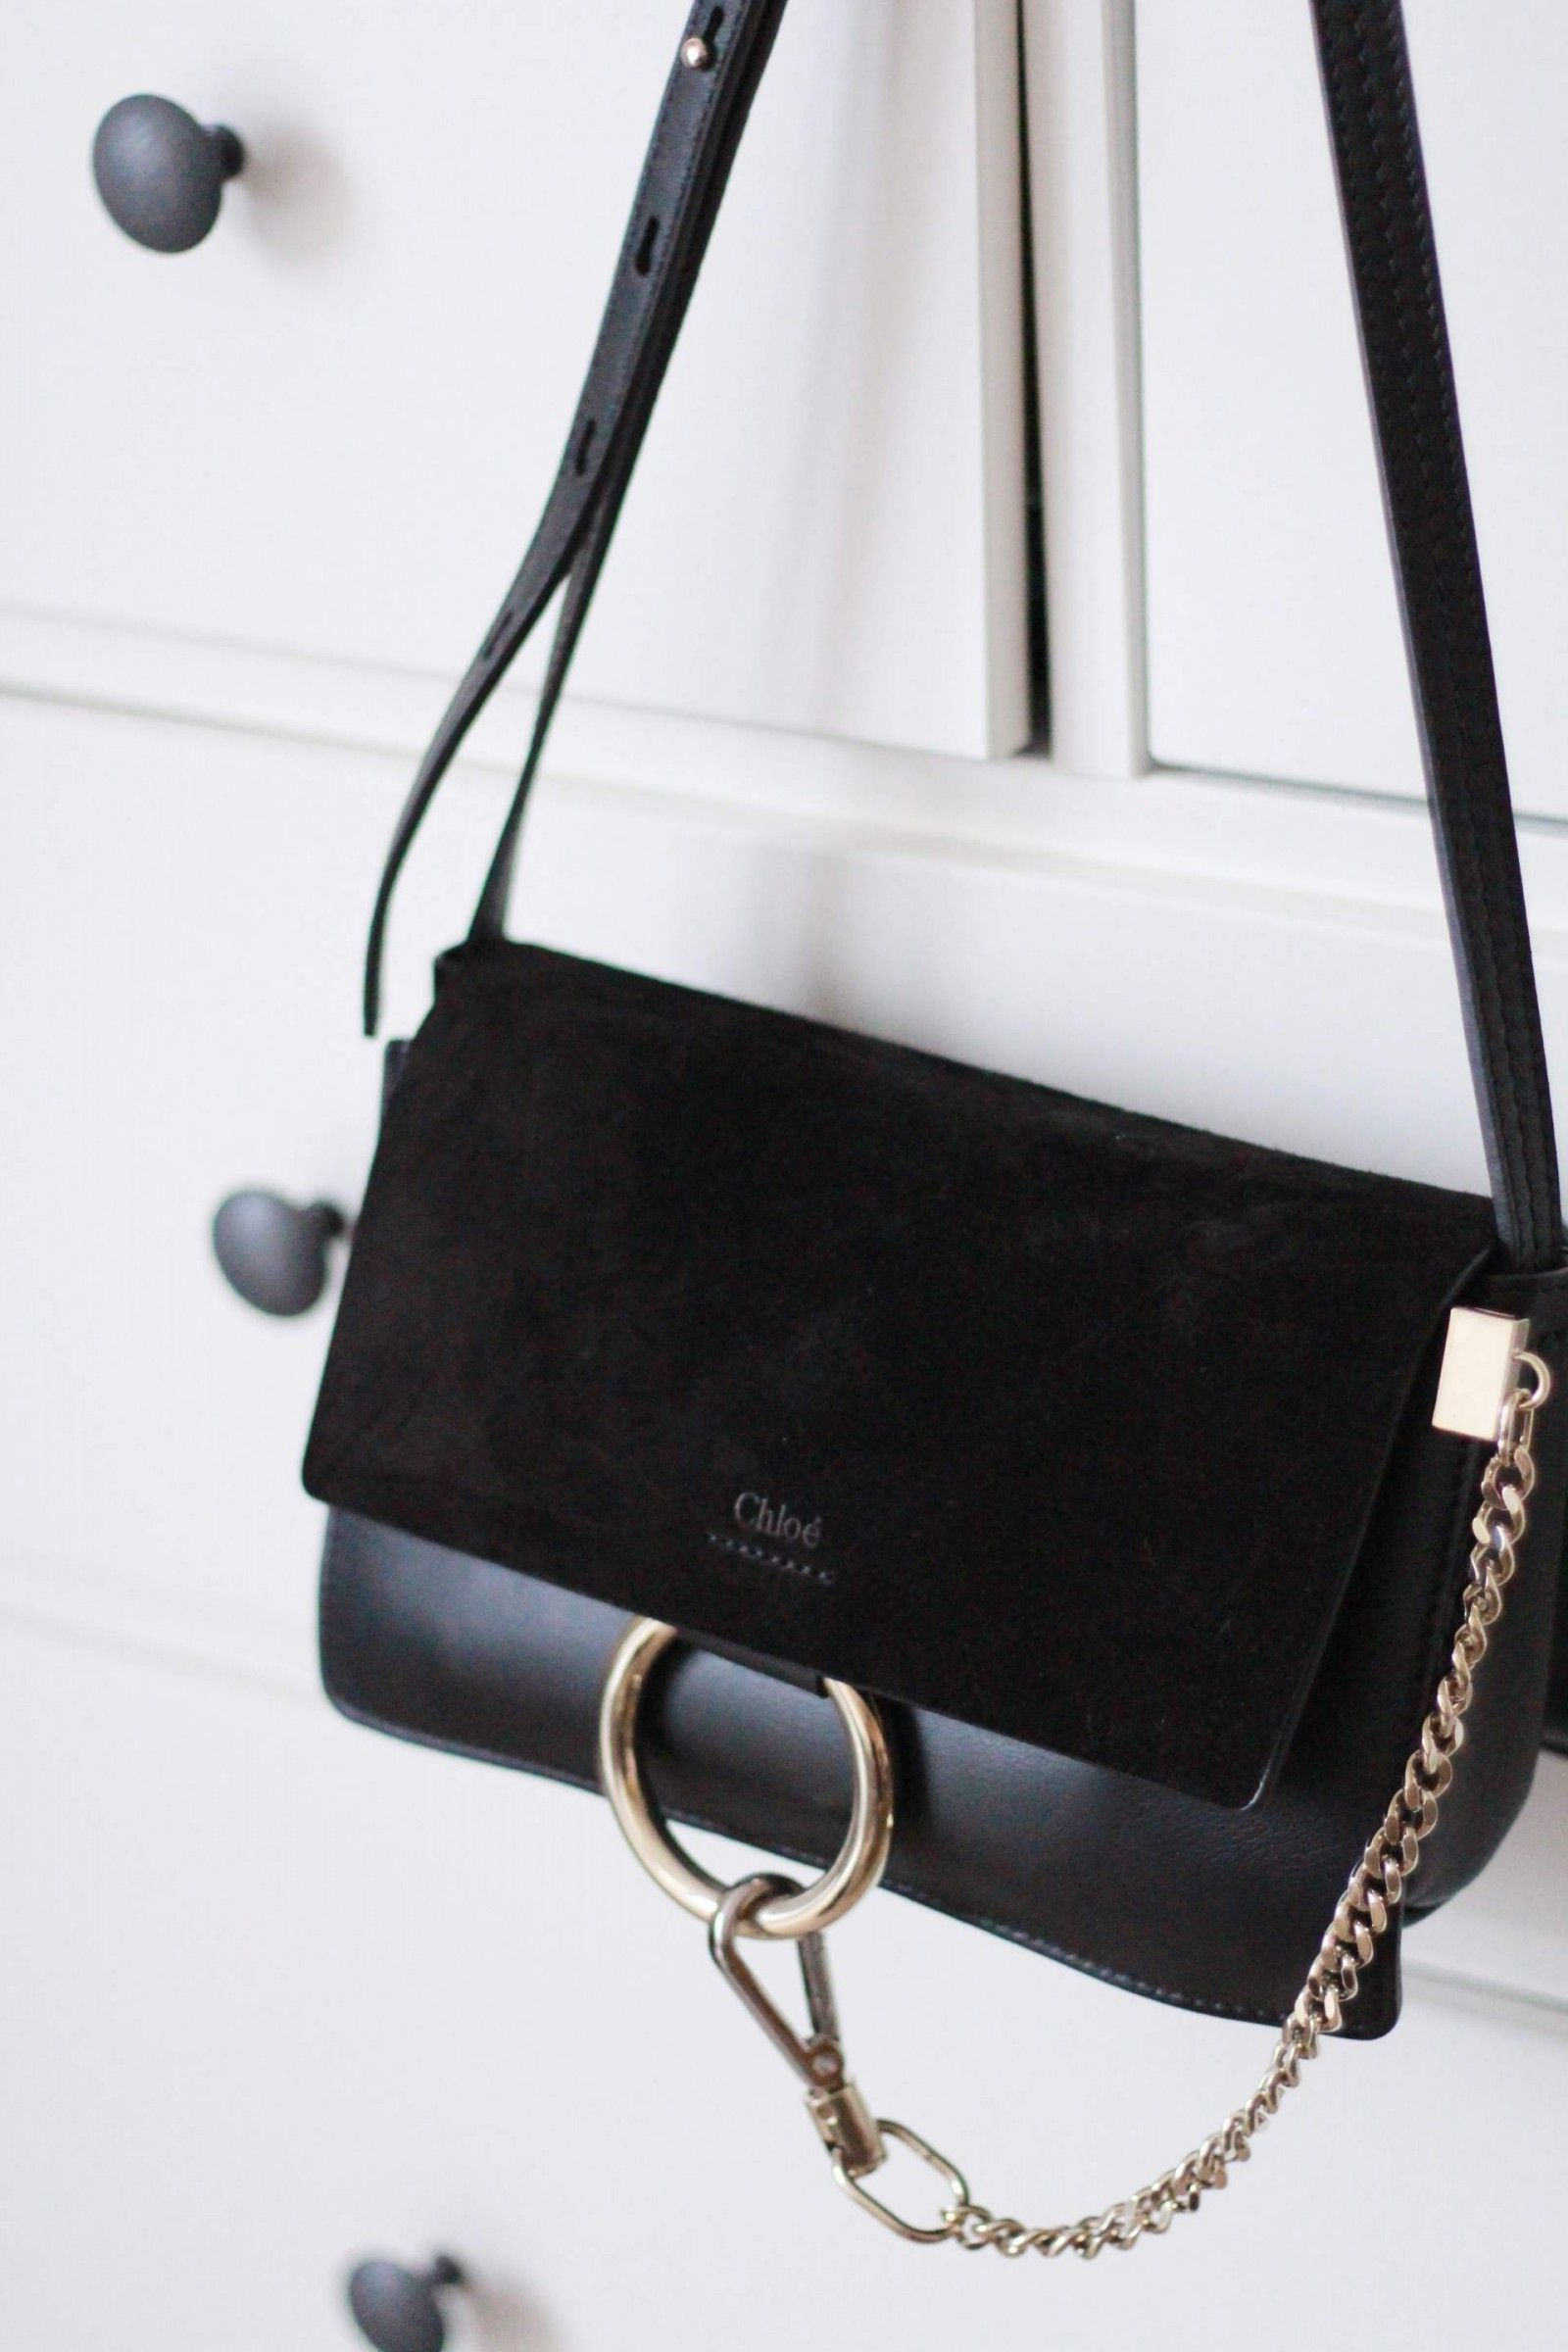 The Small Black Chloe Faye Bag | Bags, Chloe handbags and Chloe bag